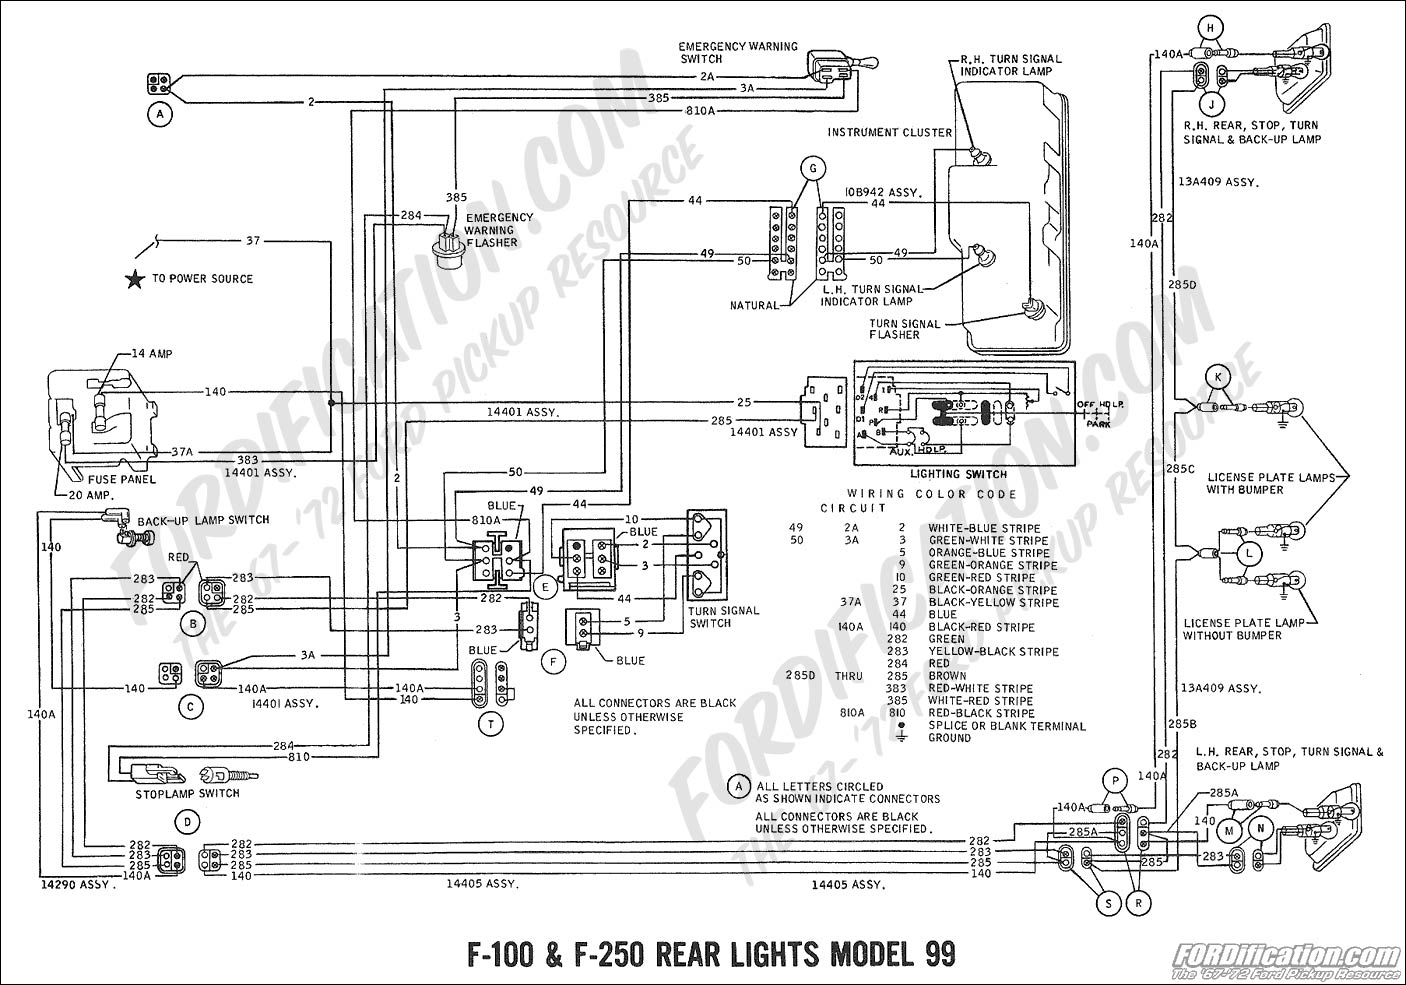 Wiring Diagram 2000 F350 Rear Lights, Wiring, Free Engine